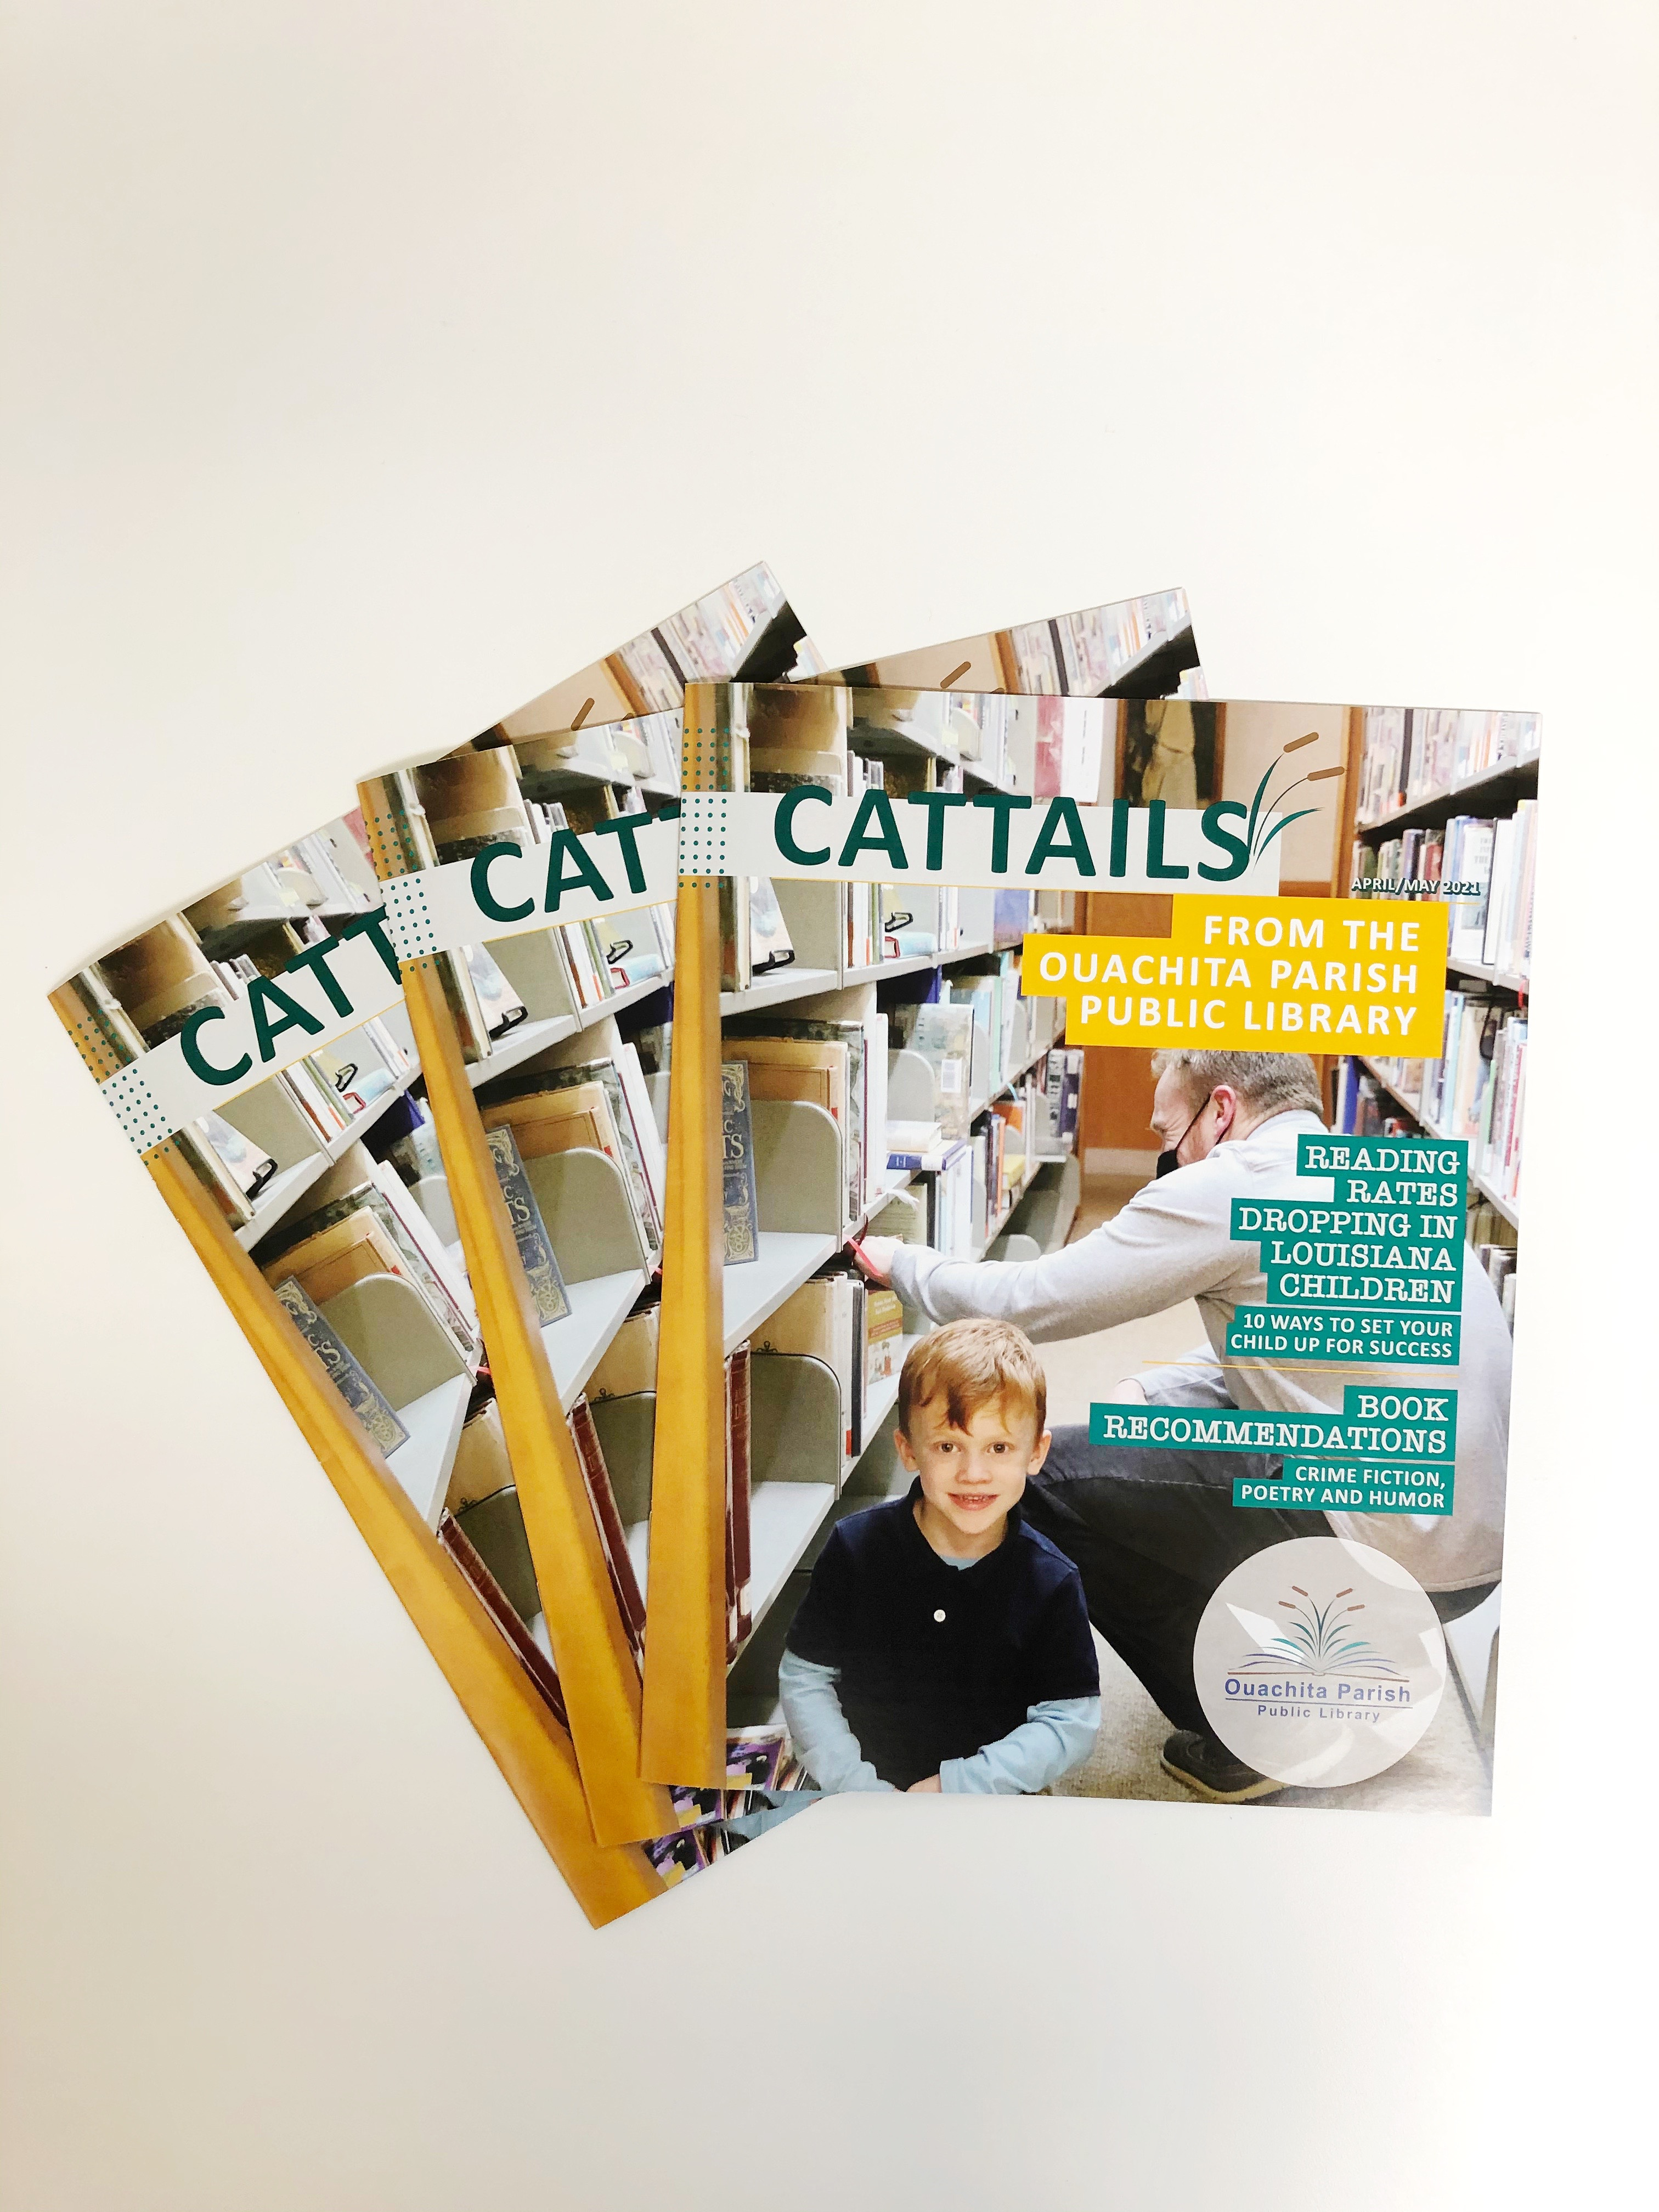 Three issues of the April/May Cattails lay on a white table.